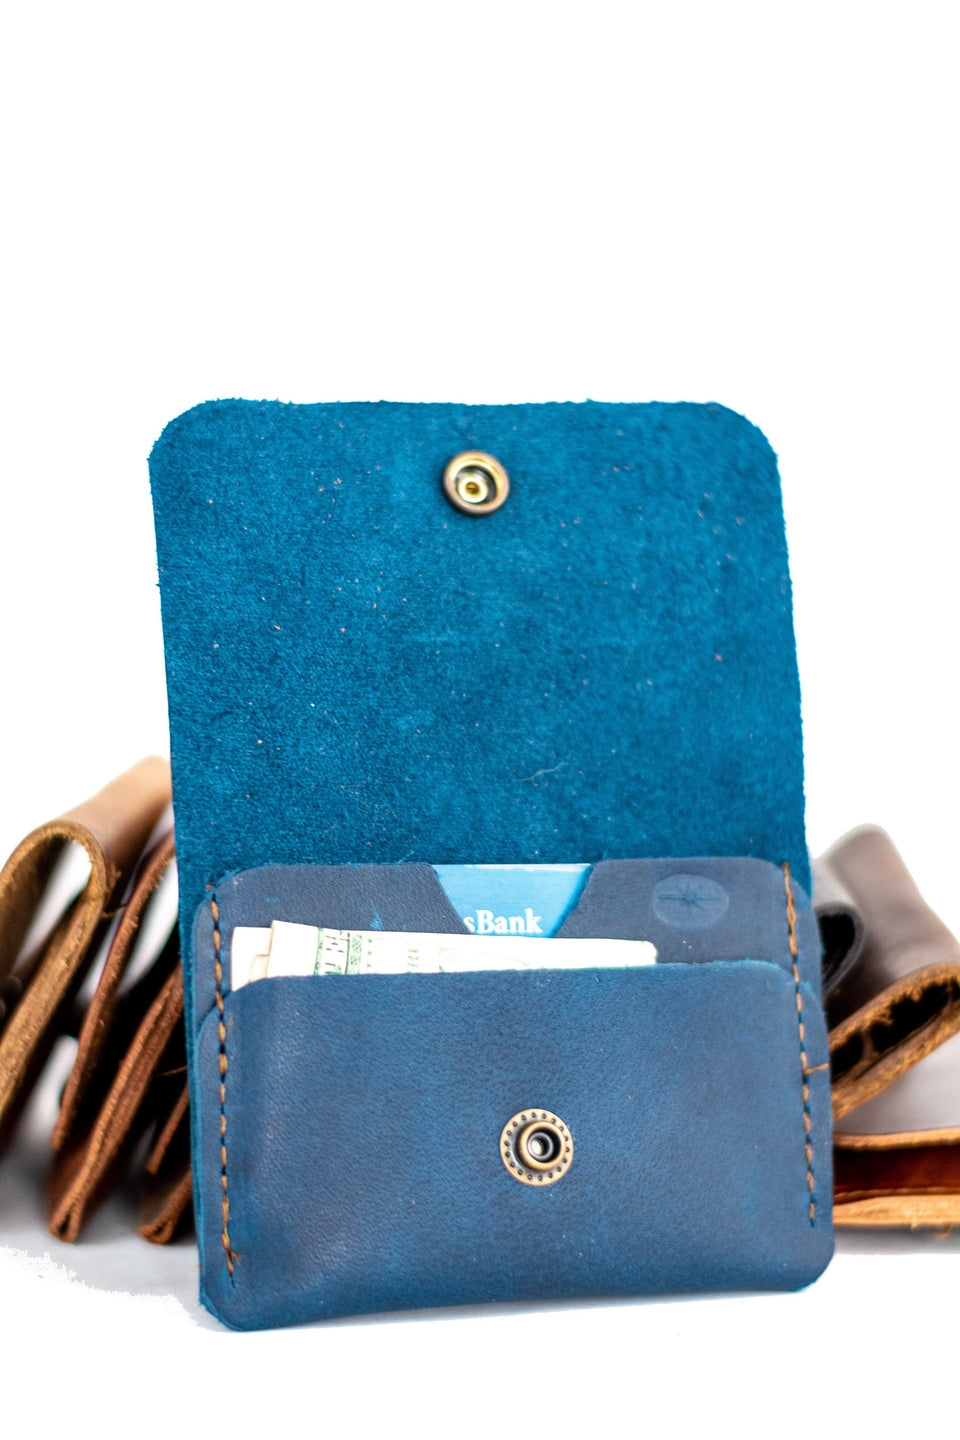 Leather Card Wallet | Front Pocket Wallet | Card Holder